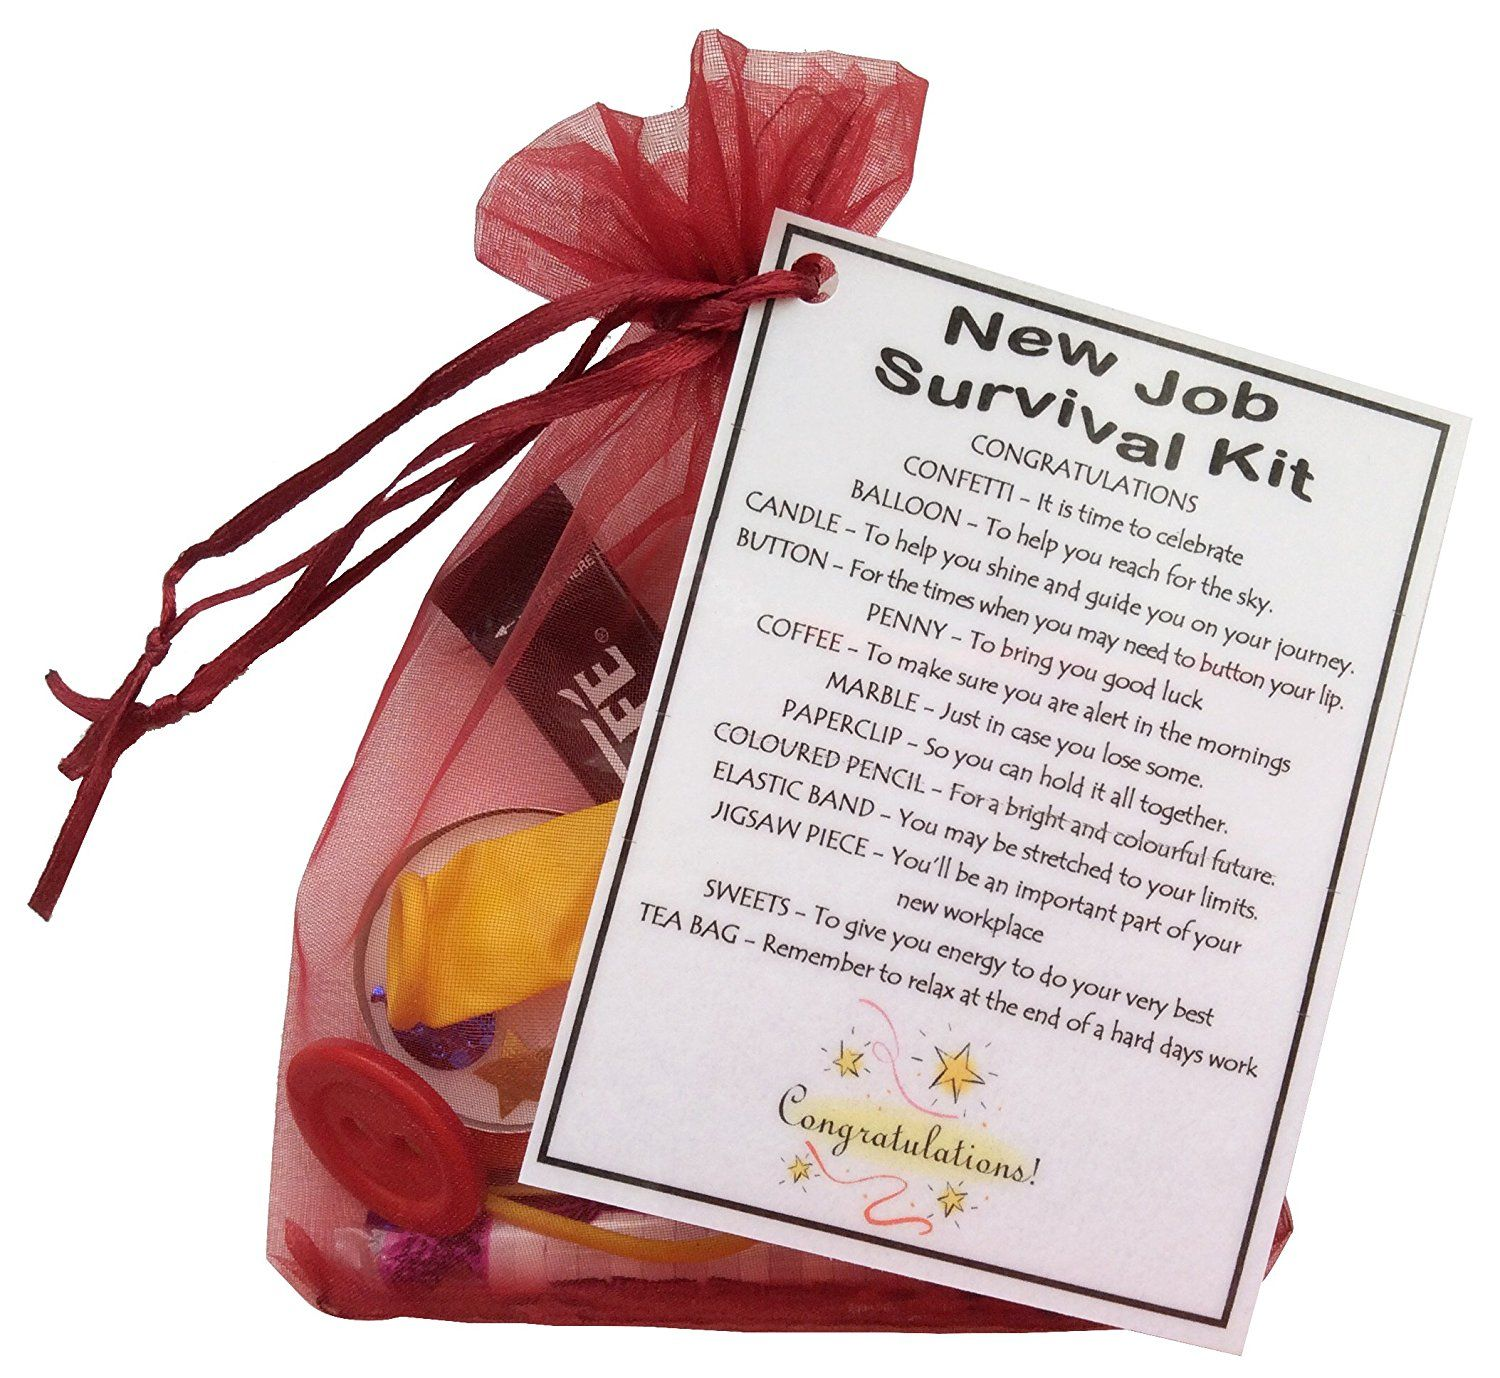 customer service survival kit pinteres new job survival kit gift great novelty gift or alternative to a card